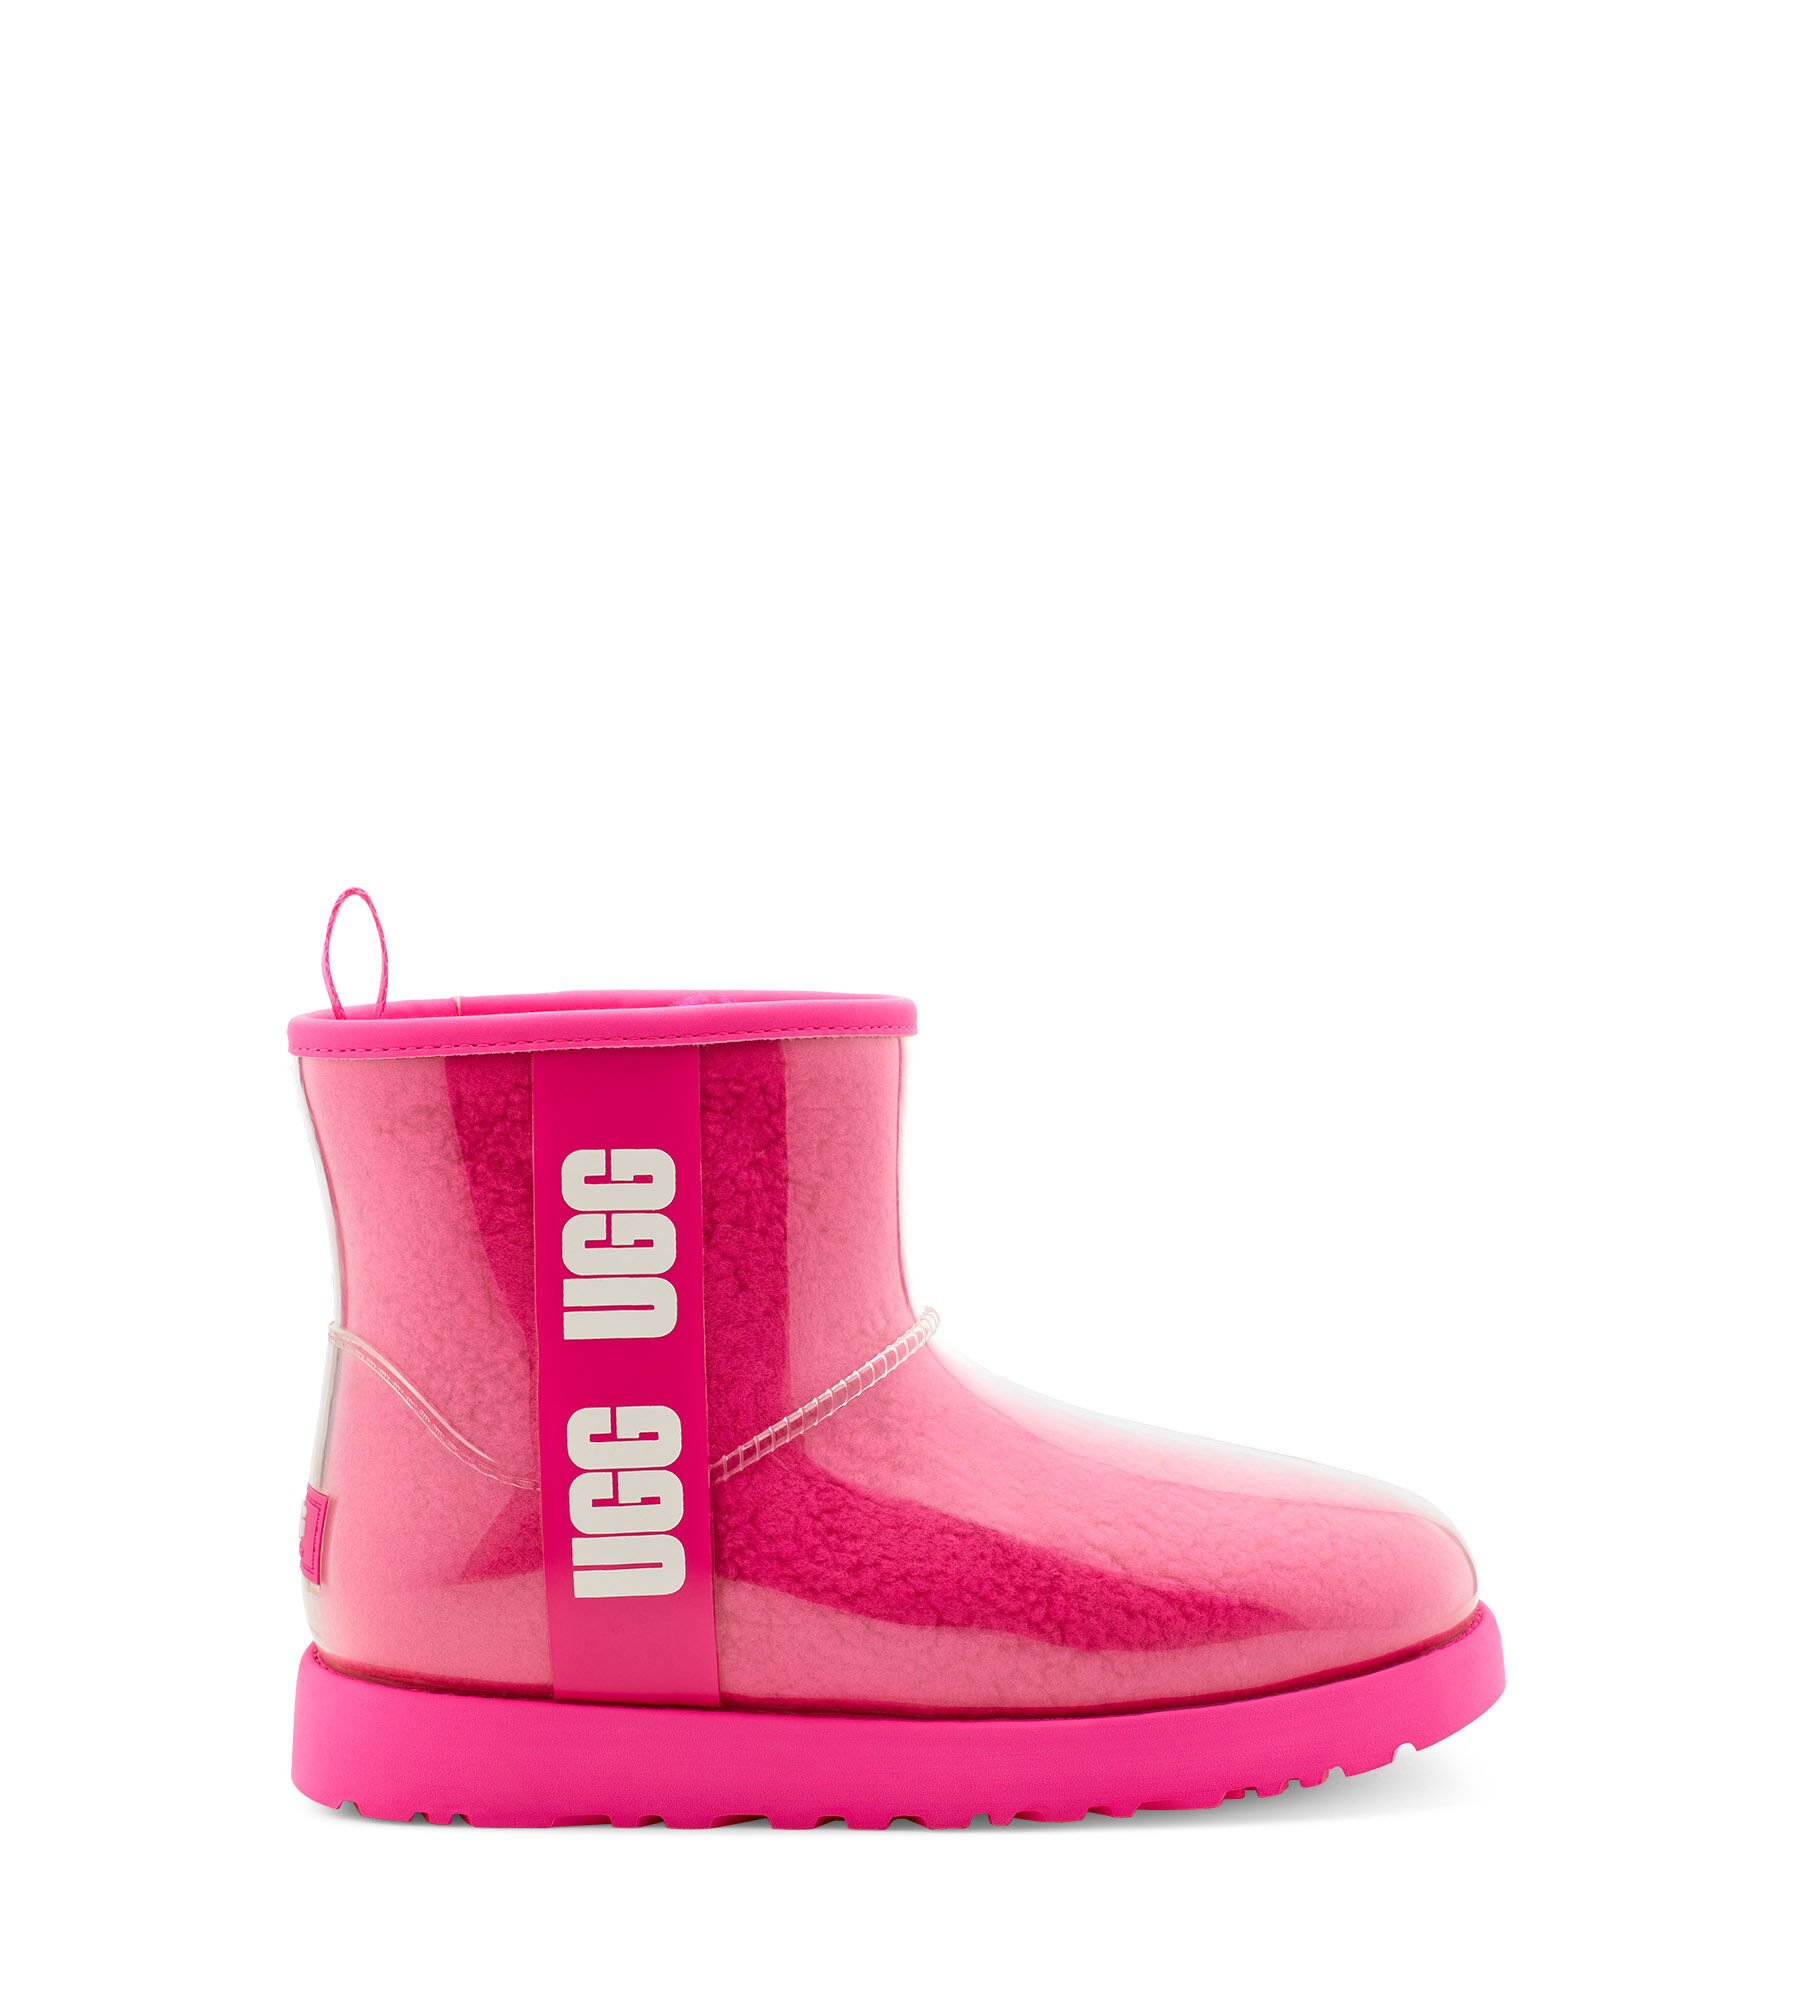 Women's Pink Boots | UGG® Official Site